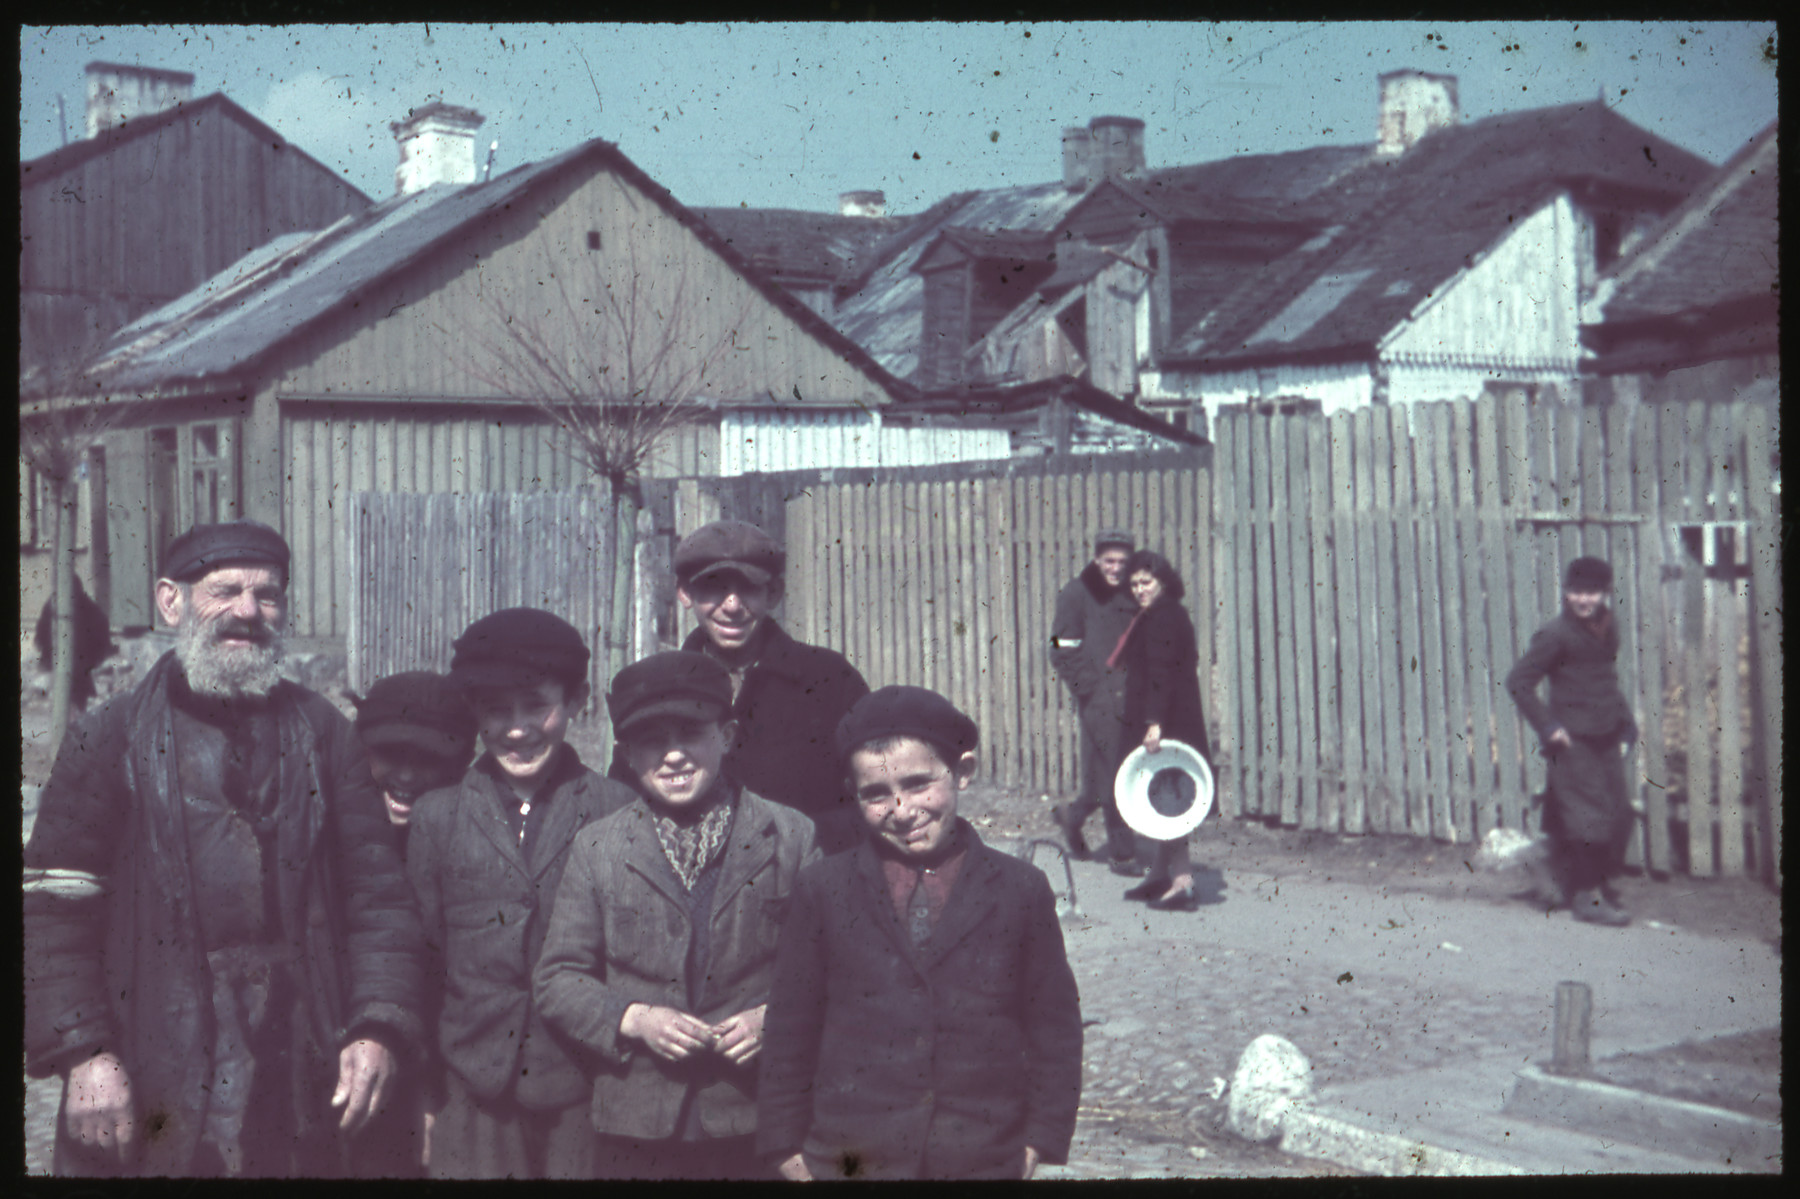 Group portrait of Jewish boys and an elderly man gathered together on a street.